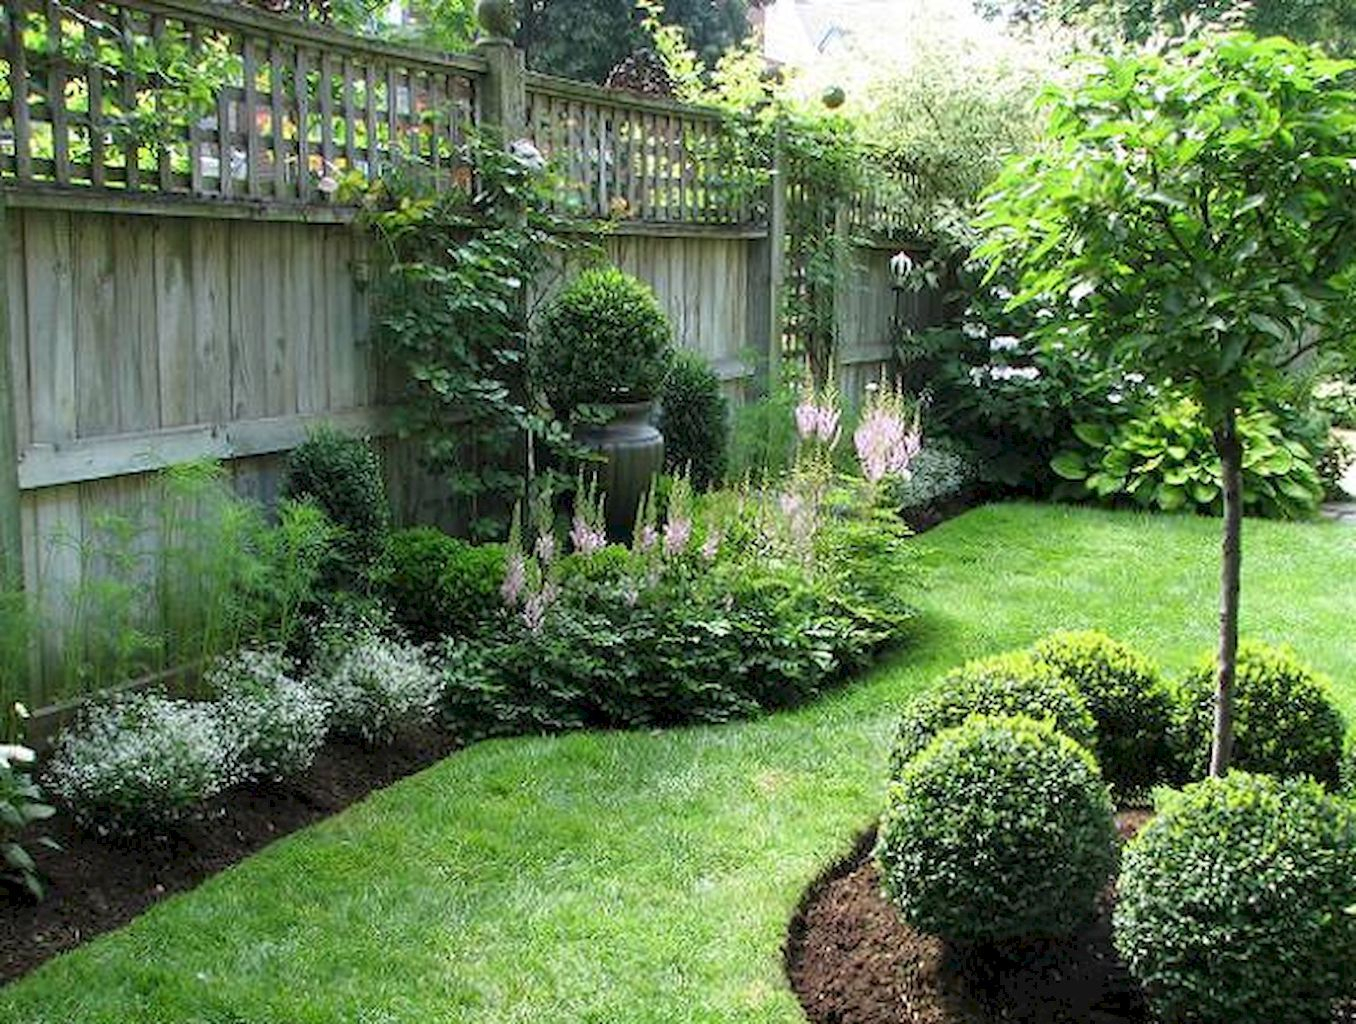 Landscaping Ideas Privacy Fence Wooden Ducksdailyblog Fence throughout 12 Smart Designs of How to Craft Backyard Ideas For Privacy